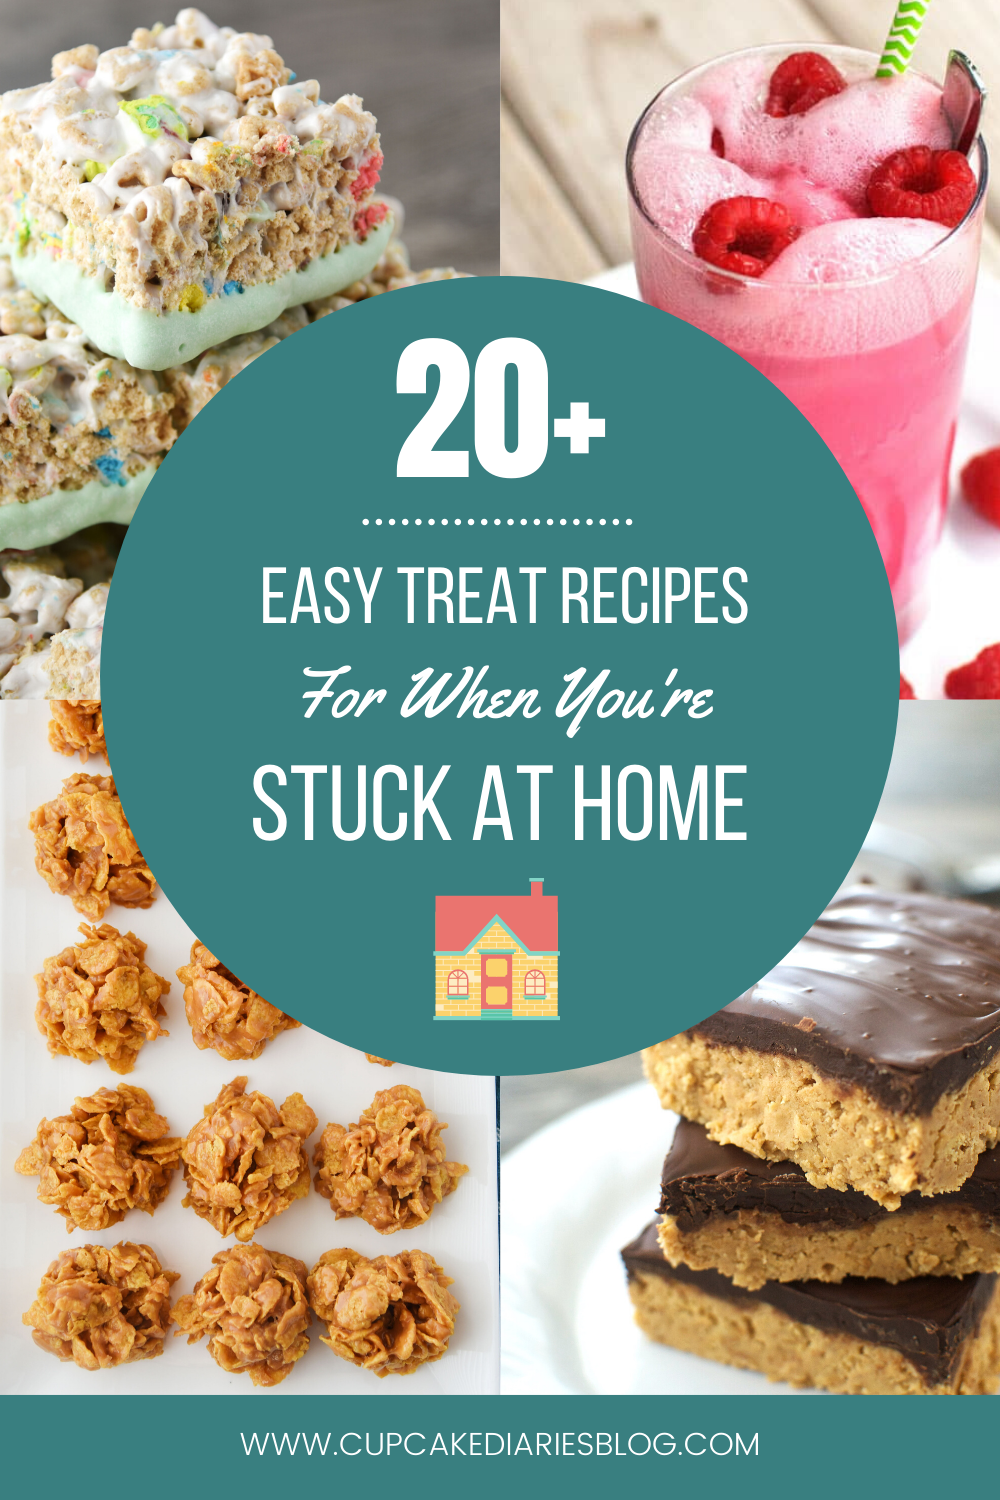 More than 20 easy treat recipes to make while you are stuck at home!